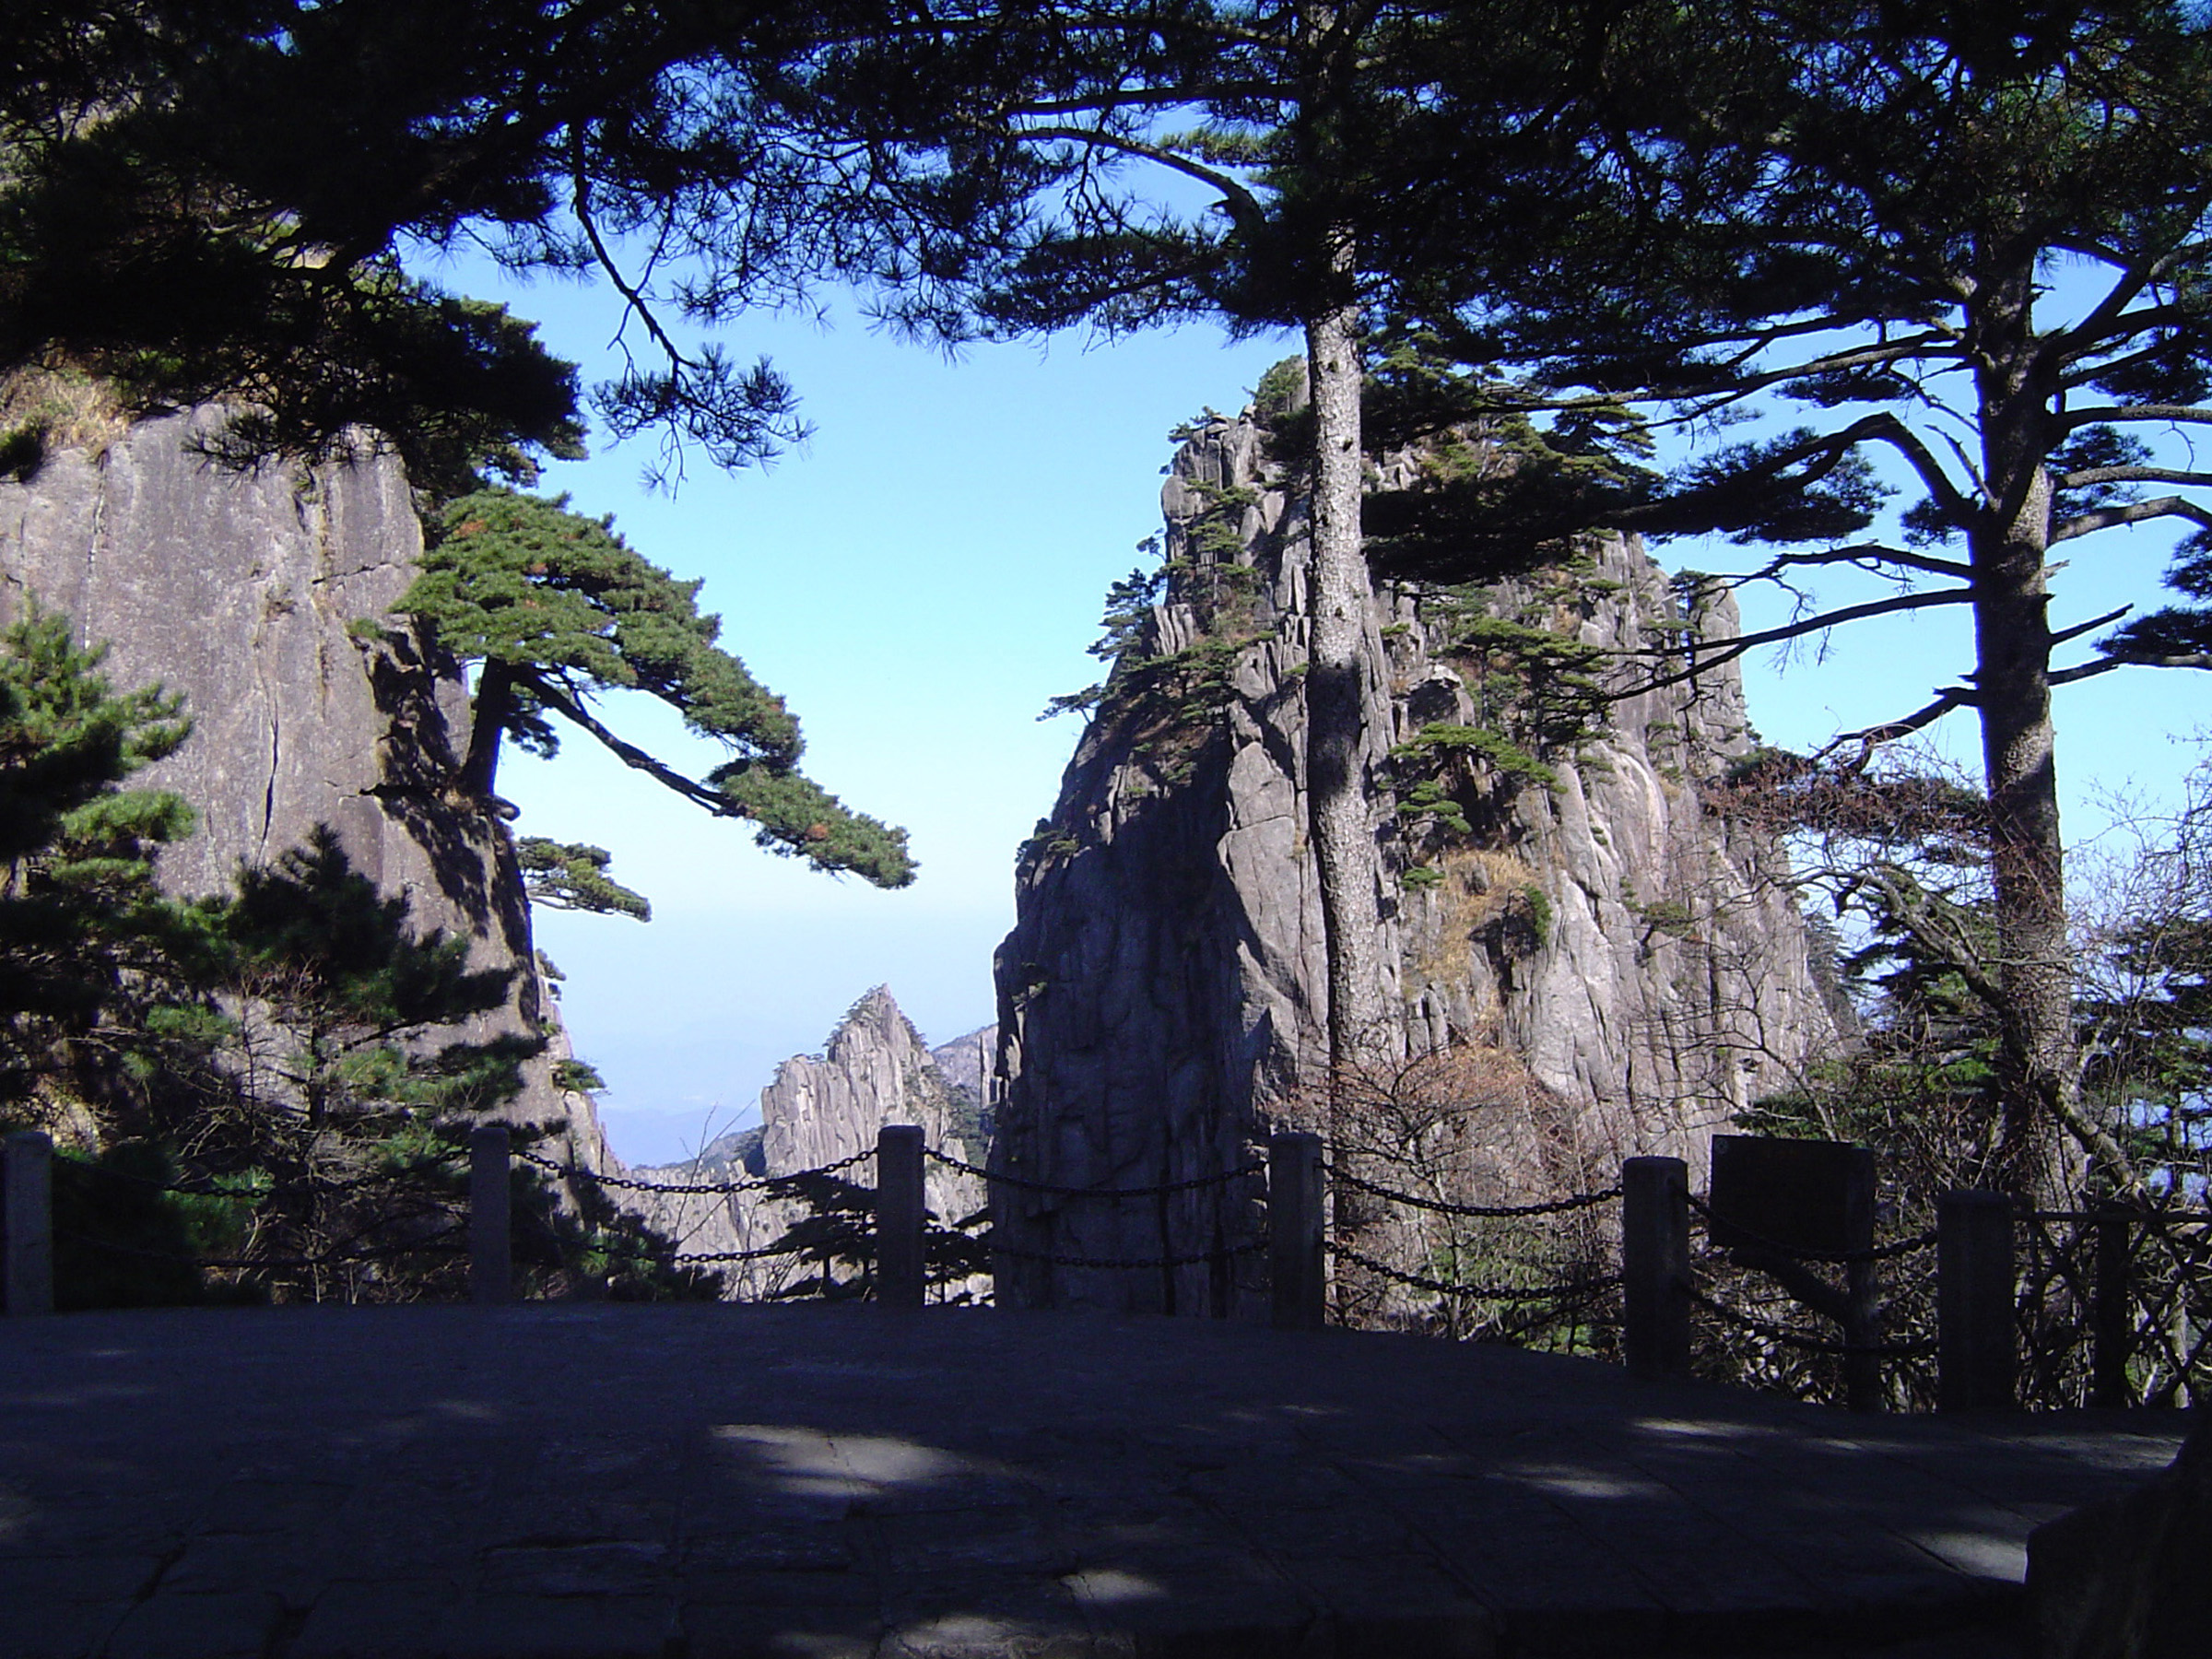 Pine trees in the Yellow Mountains, or Huangshan mountain range, in China with outcrops of towering rock in a scenic landscape